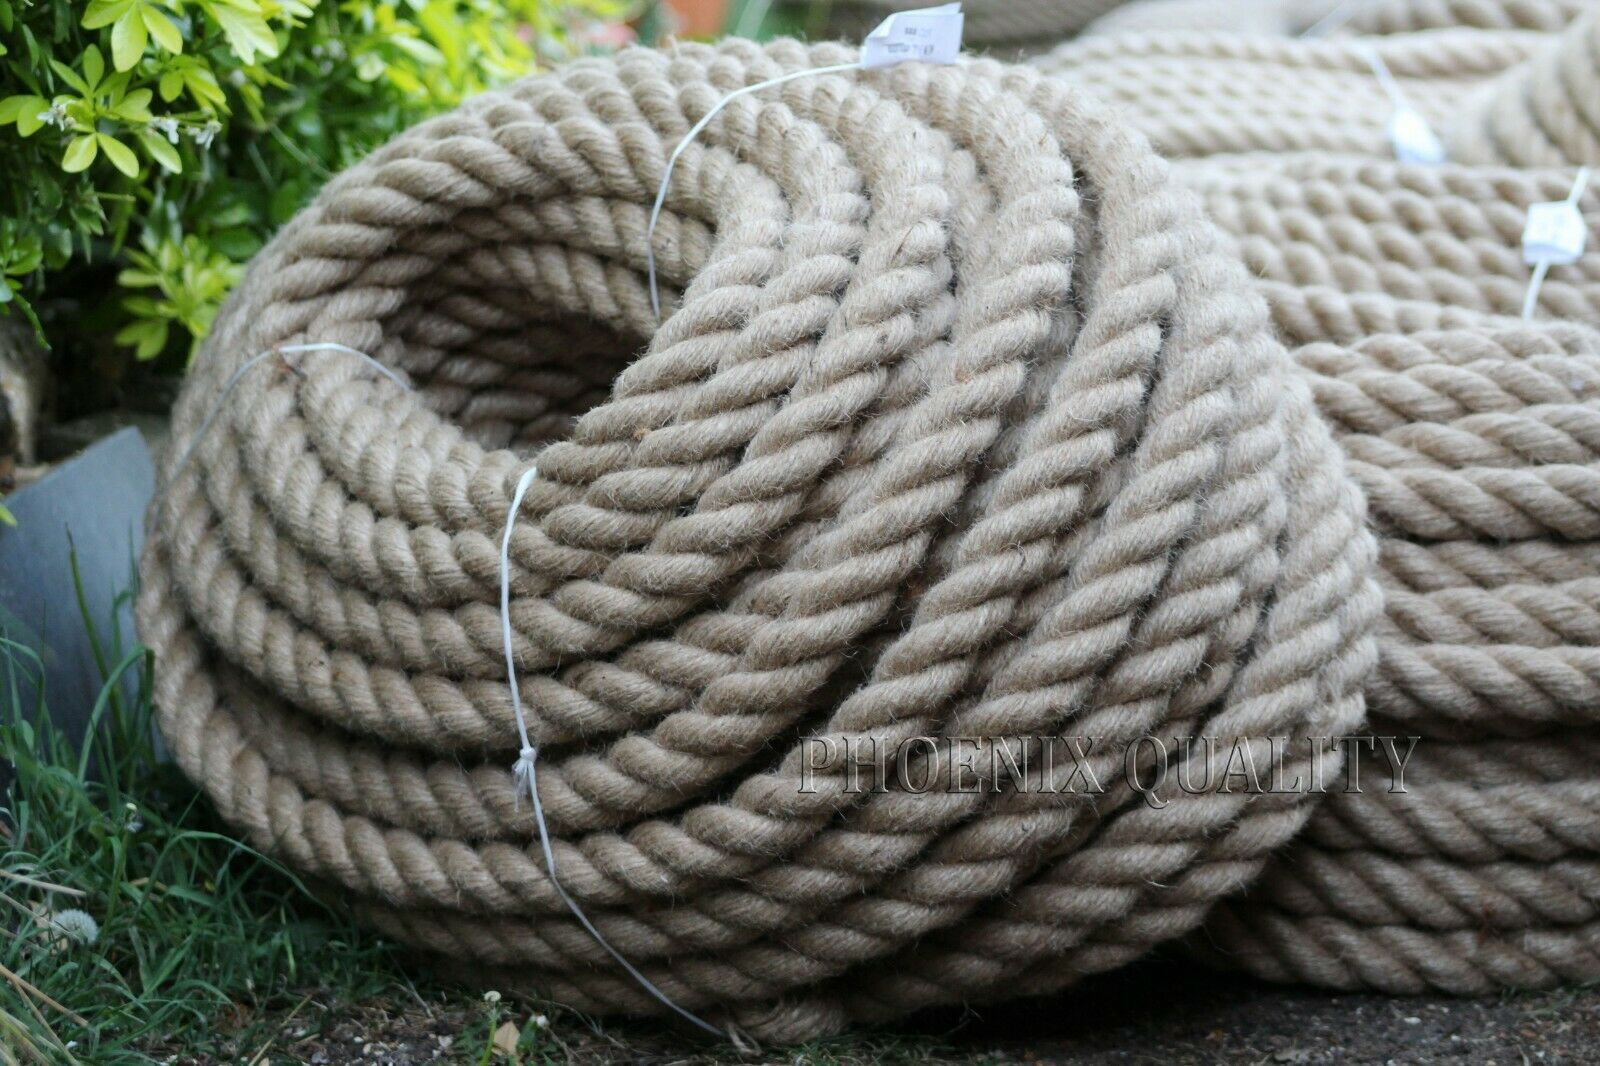 100/% Pure Cotton Rope ☞ Natural Woven Cord Twine Sash ☞ 4mm 12mm ☞ 1m 100m